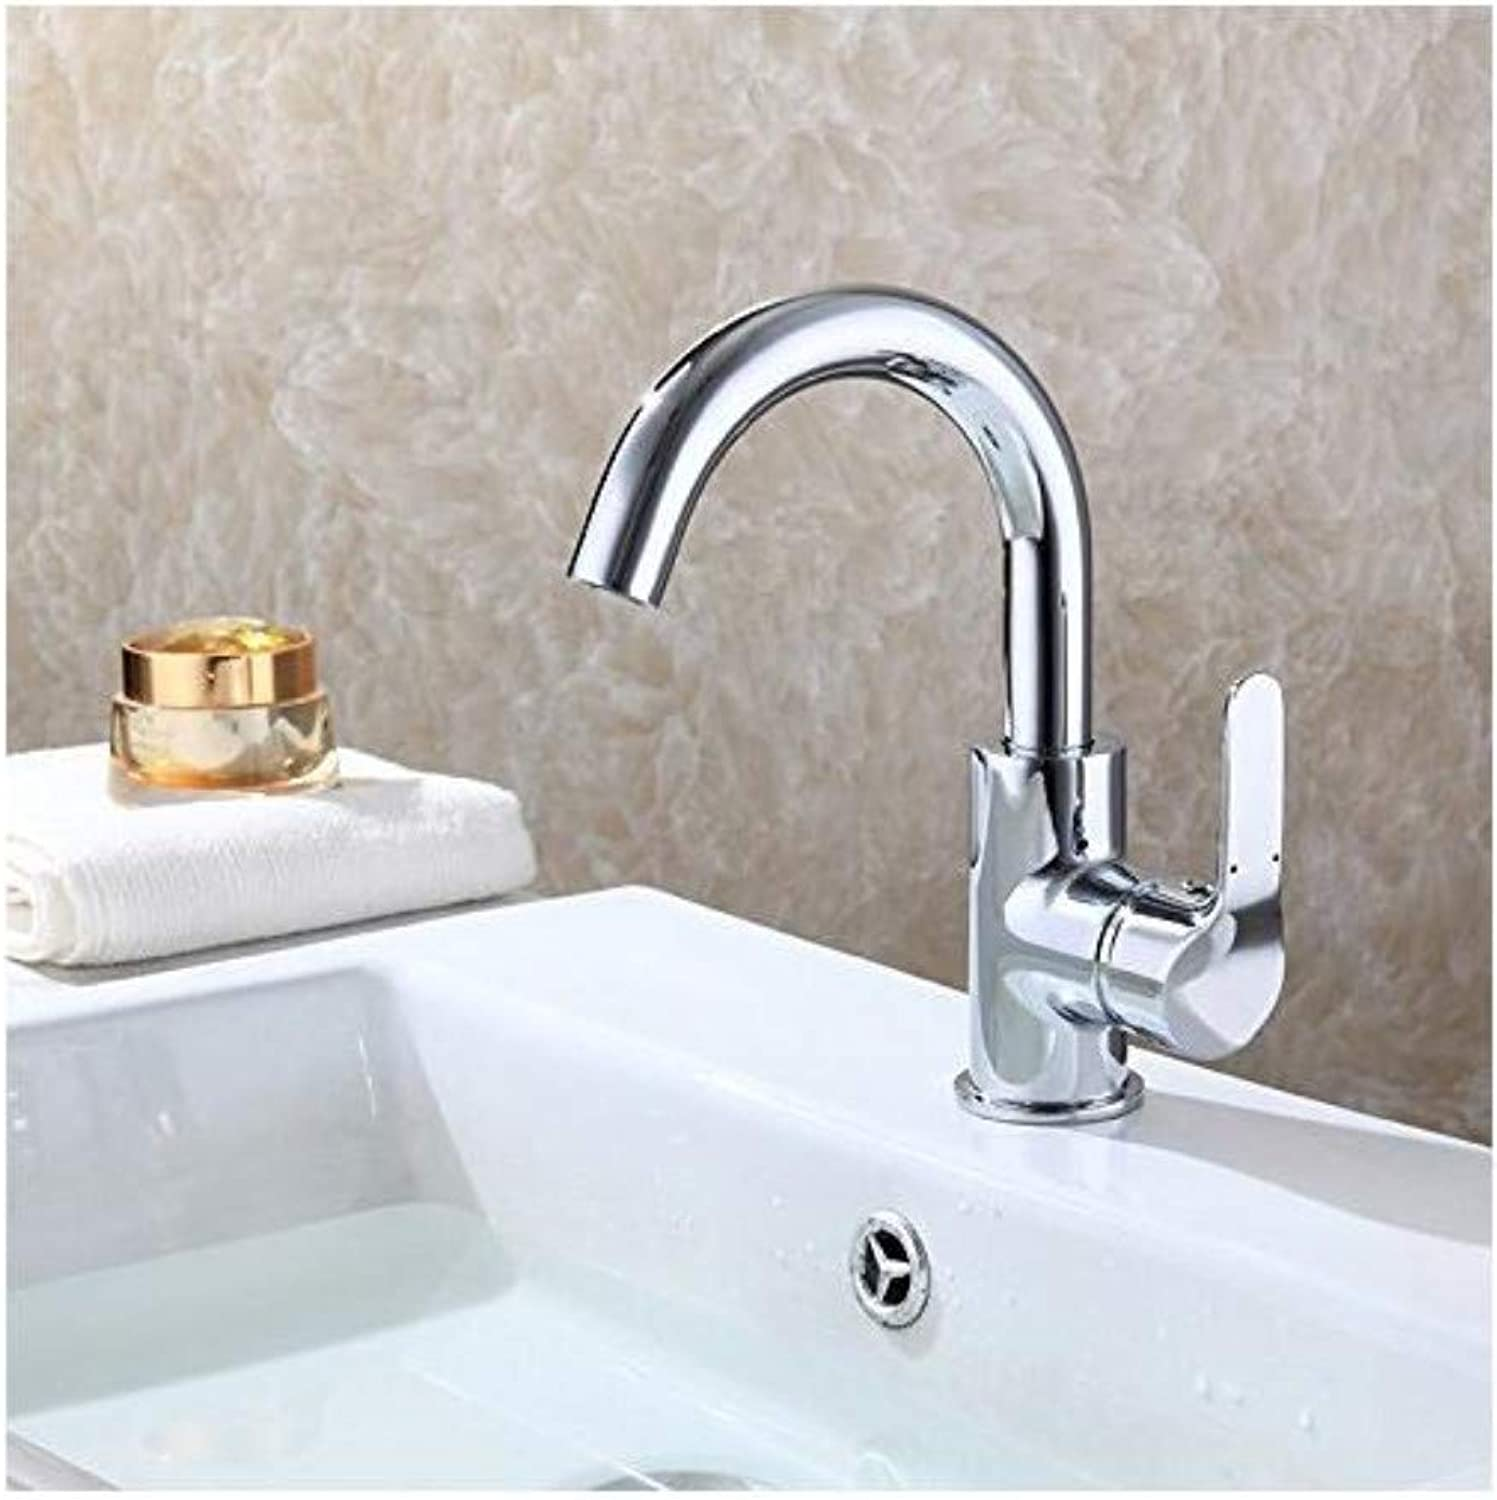 Modern Plated Mixer Faucet Faucets Mixer 360 Degree redate Easy Wash for Basin Faucet Kitchen Brass Chrome Water Tap Hot Cold Spool